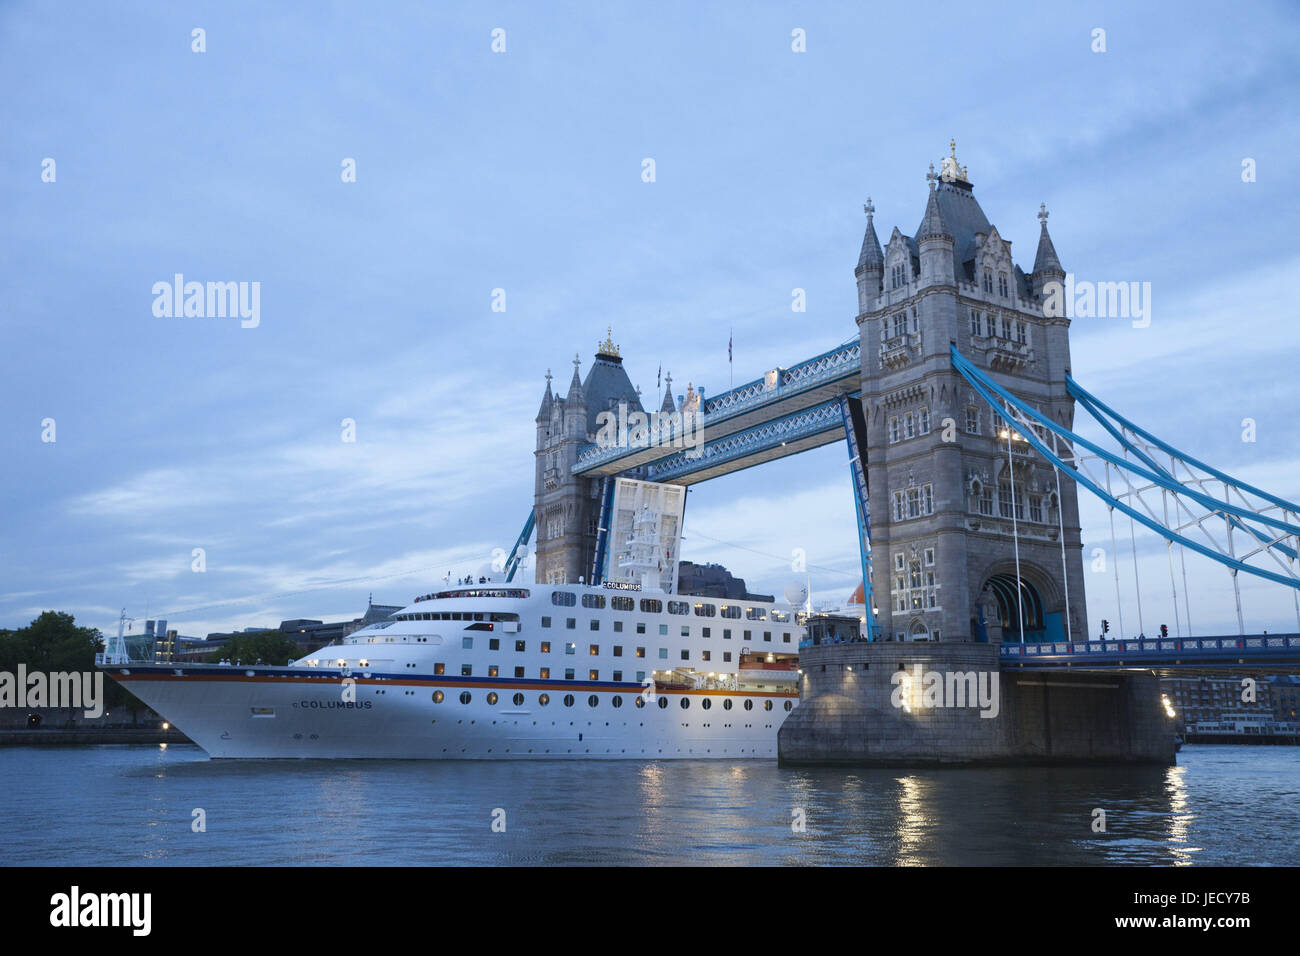 England, London, Tower Bridge, opened, the Thames, dusk, cross driving ship, town, architecture, structure, landmark, Stock Photo